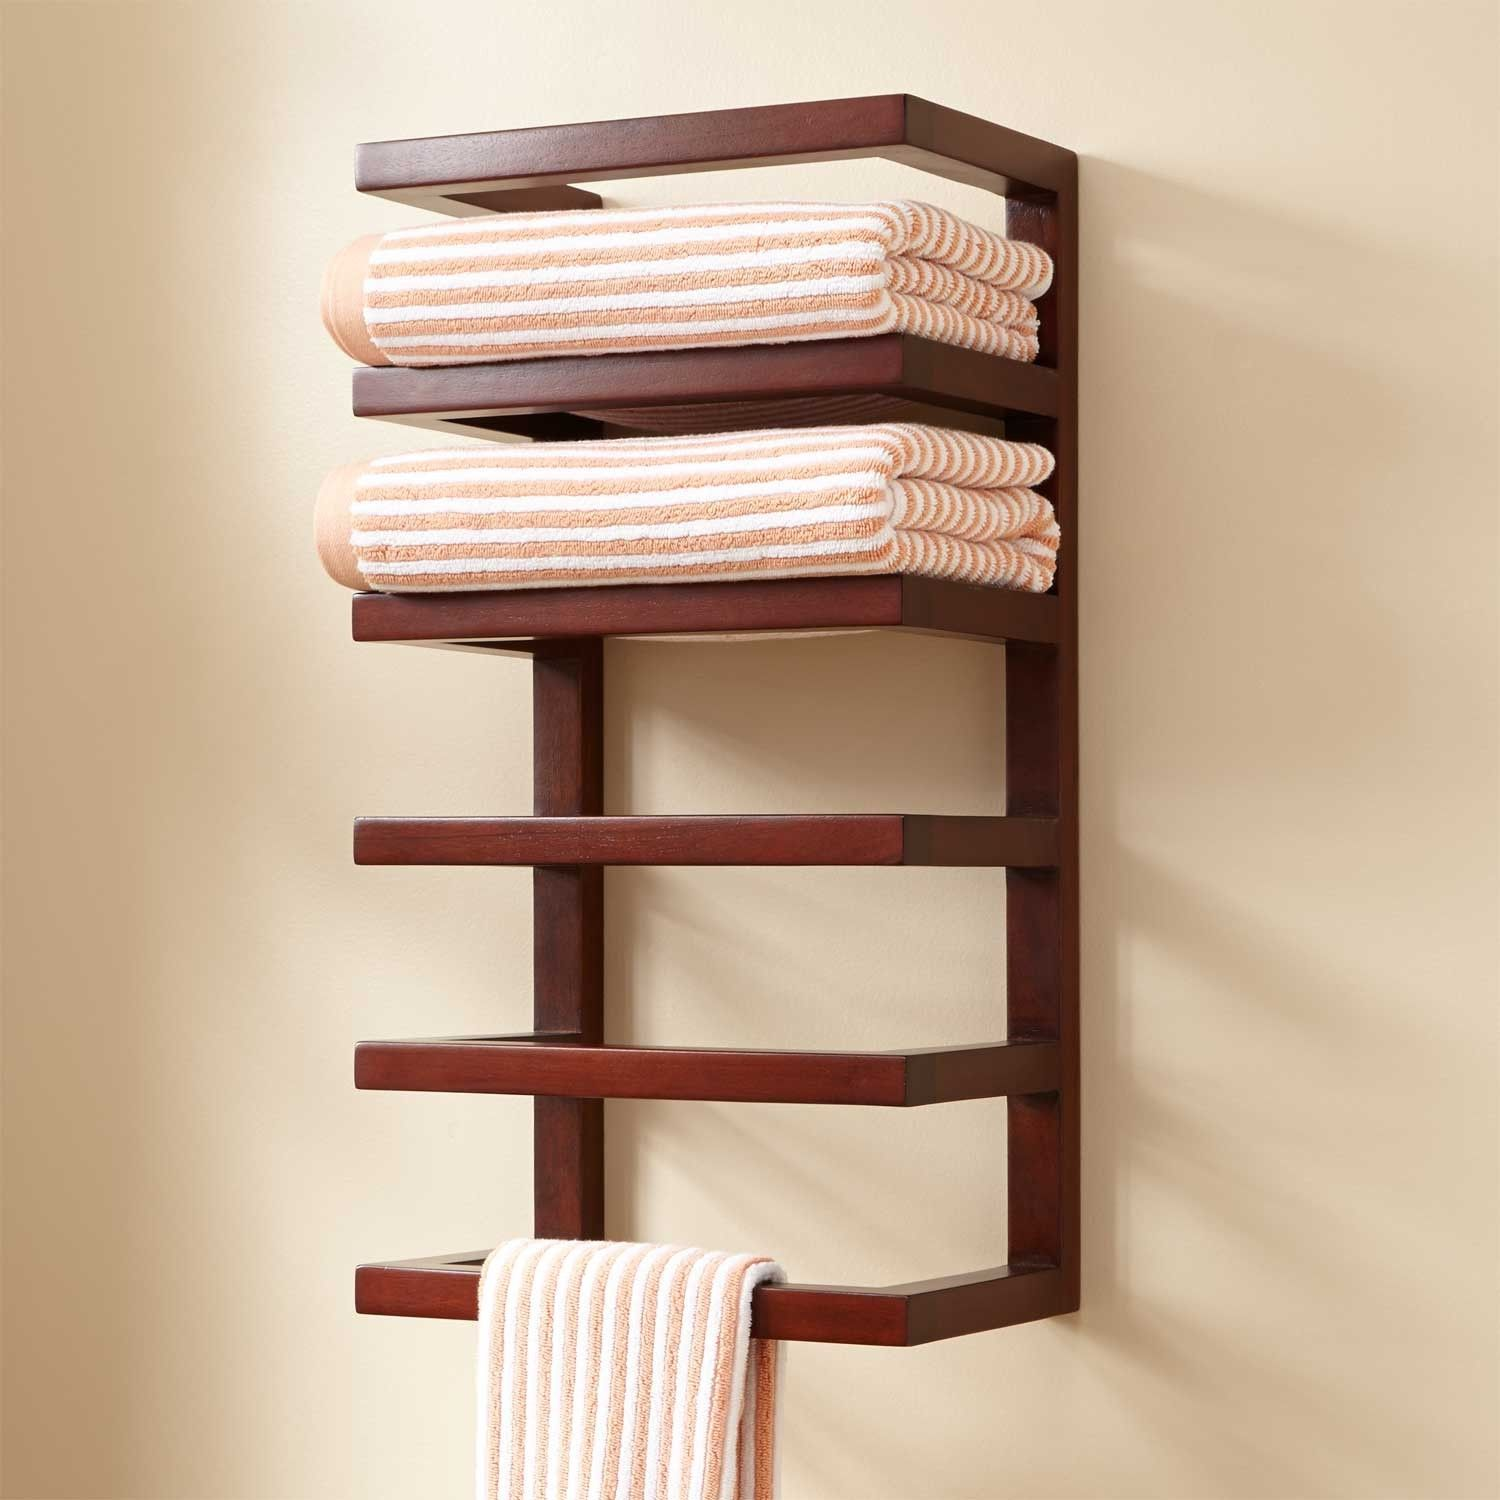 Mahogany hanging towel rack towel holders bathroom for Bathroom towel storage